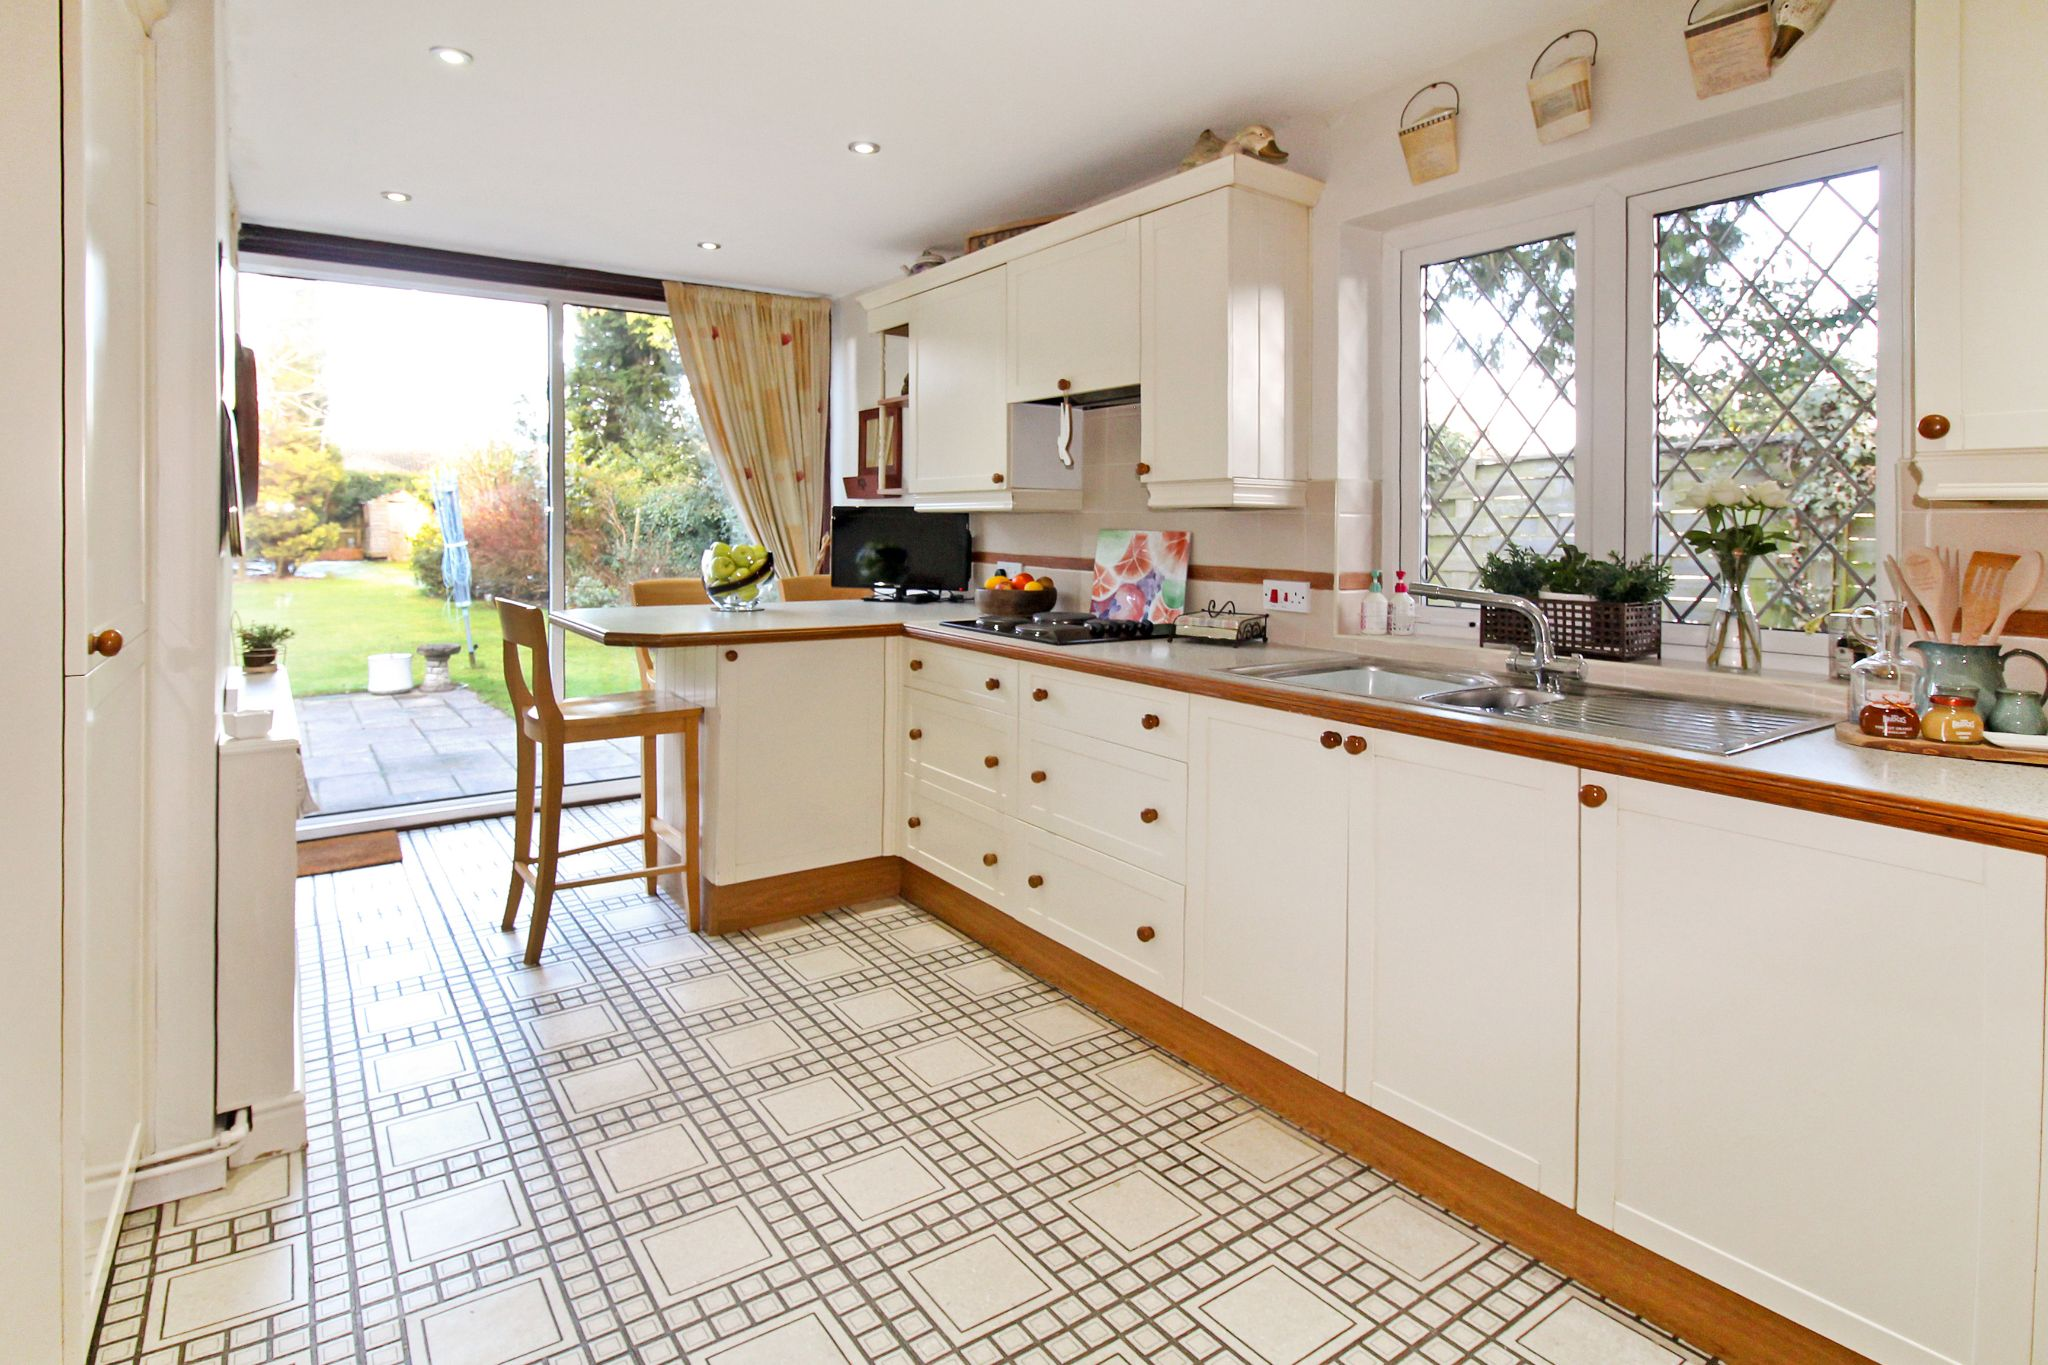 4 bedroom semi-detached house SSTC in Solihull - Photograph 5.